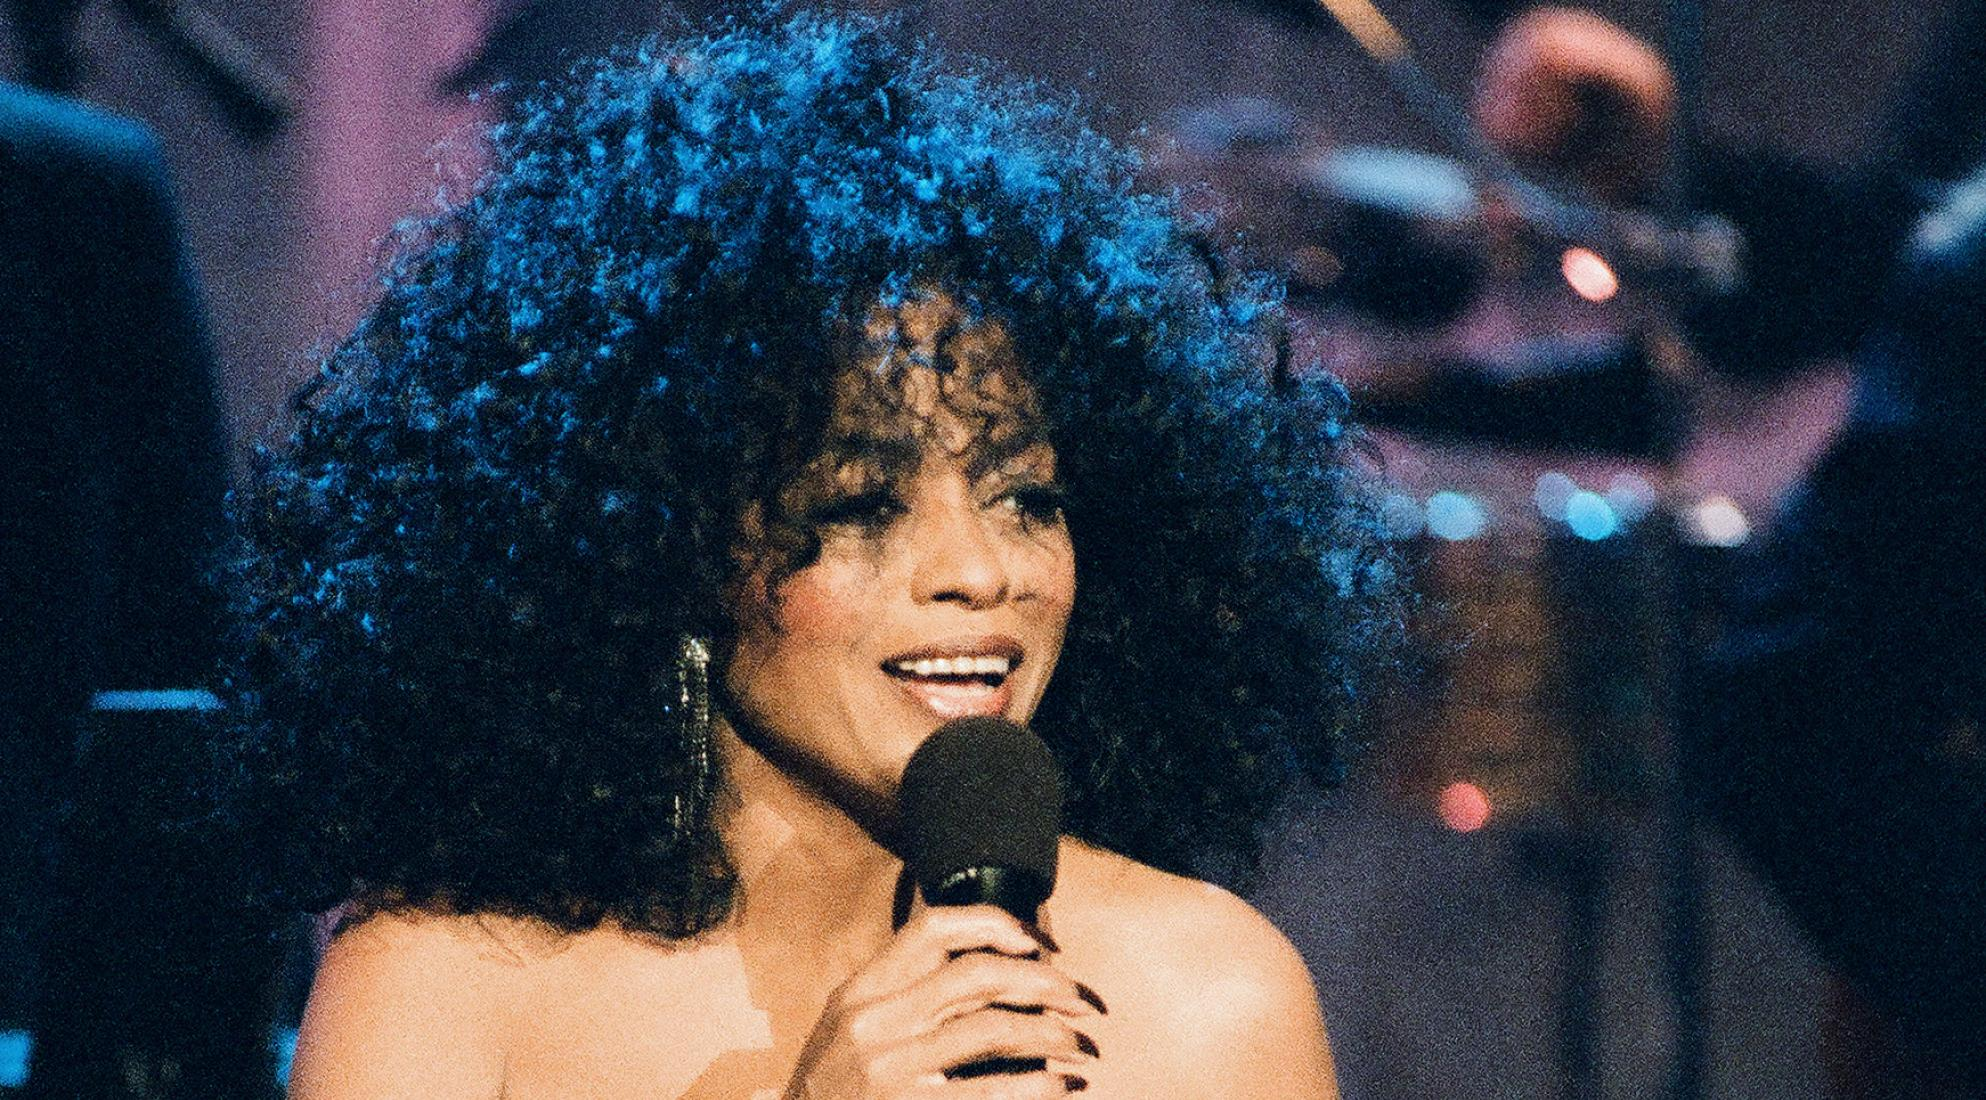 Happy birthday Diana Ross. What a legend!